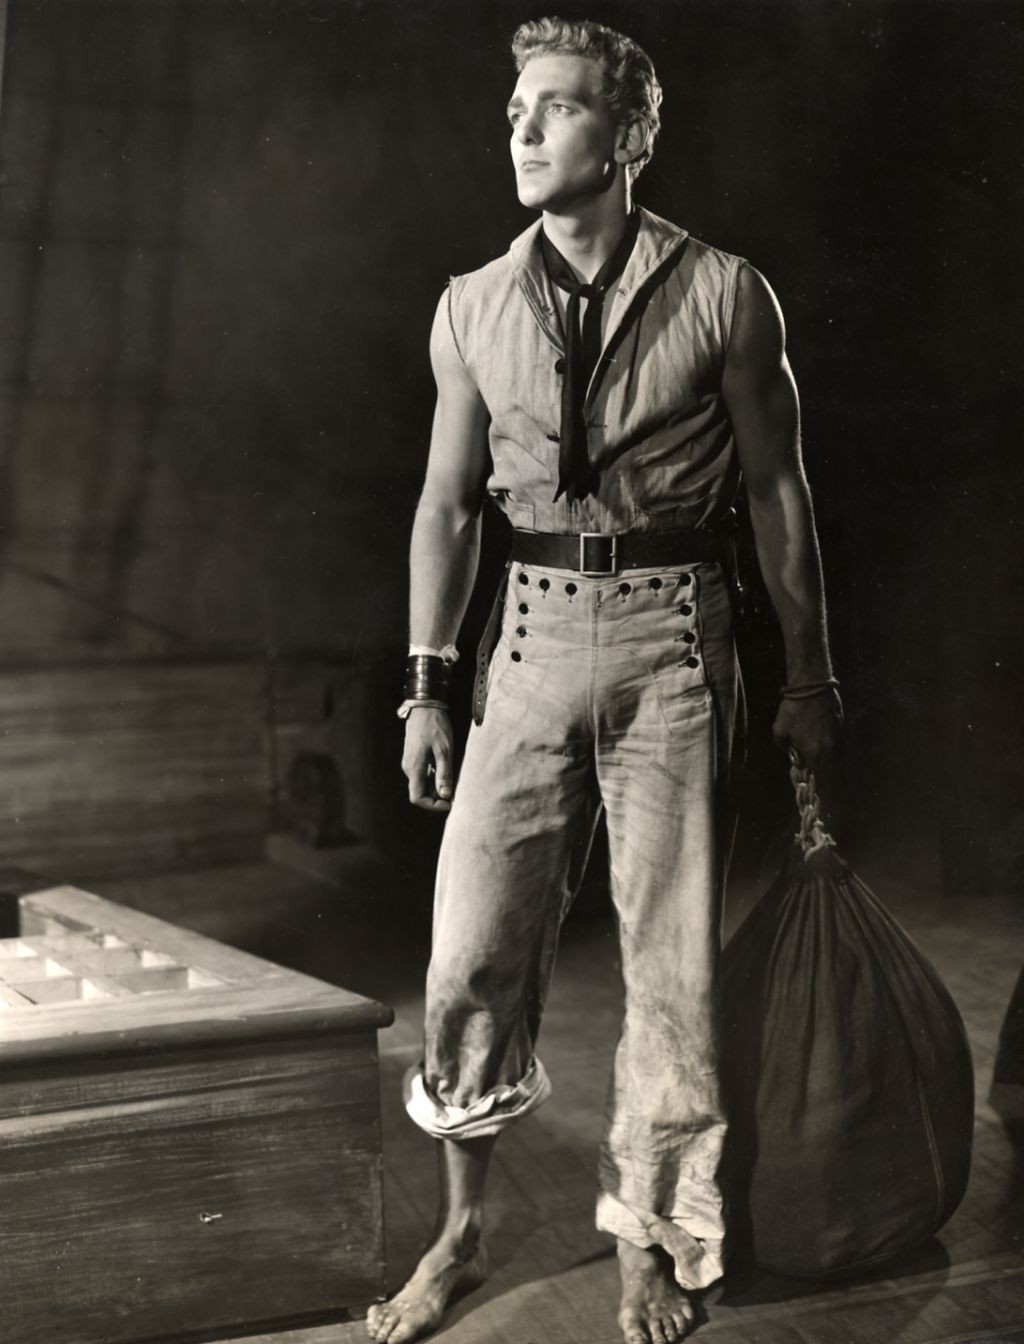 billy budd essay  english actor charles nolte as the title character in the broadway production of billy budd